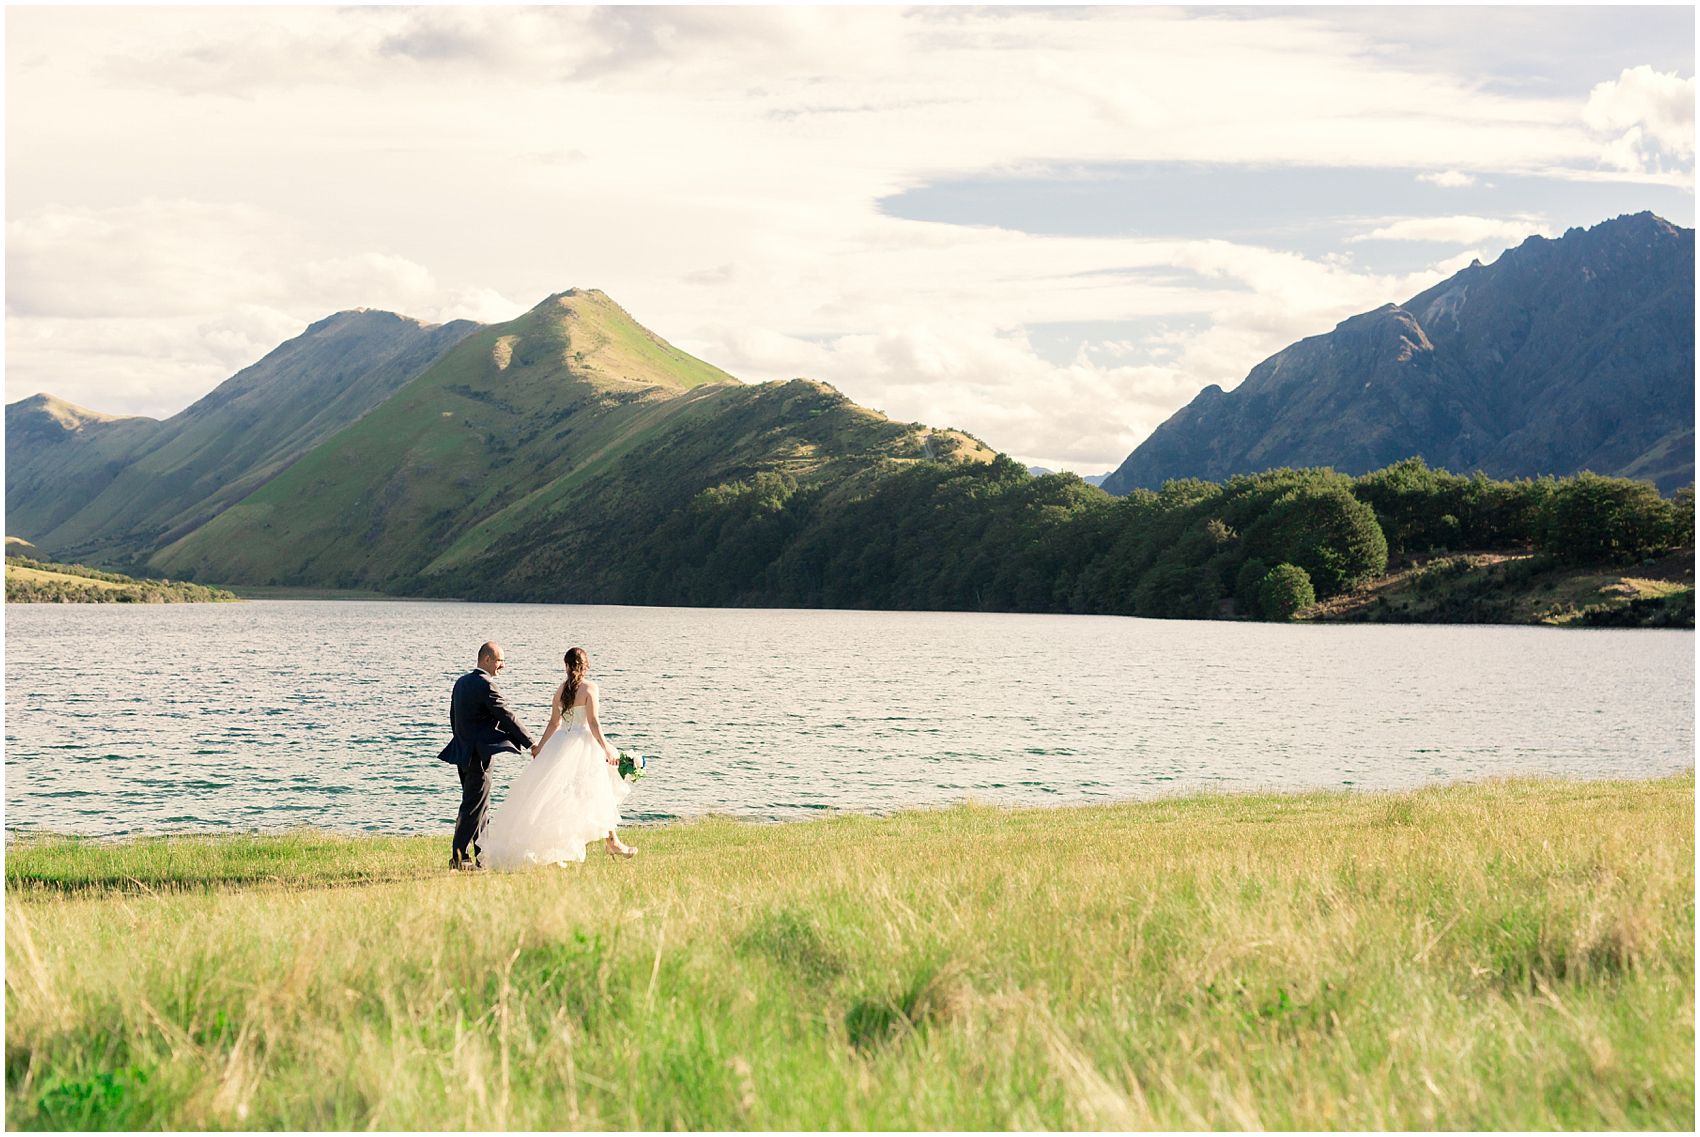 Queenstown New Zealand Wedding Photographer Bruna Fabricio Smetona Photo-0055.jpg